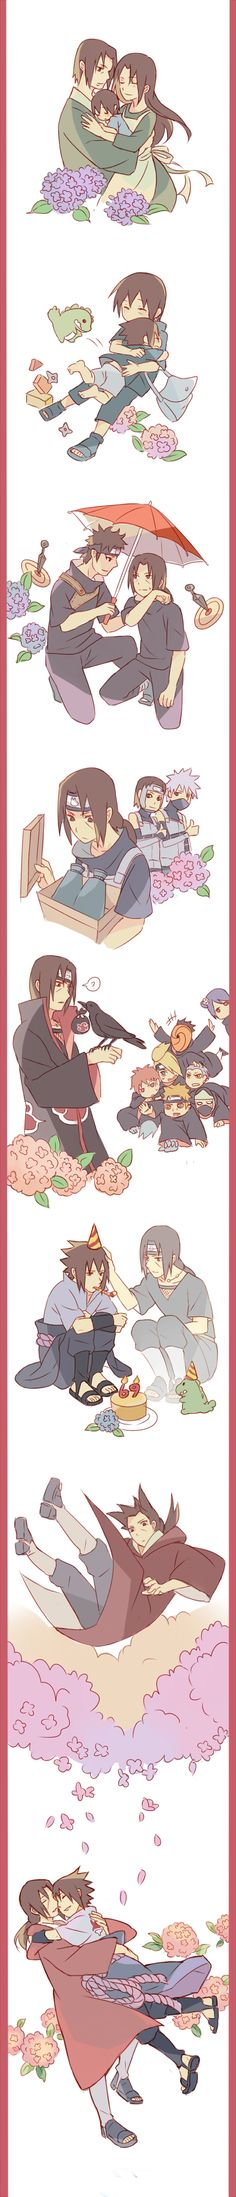 Itachi's always there for Sasuke, isn't he?